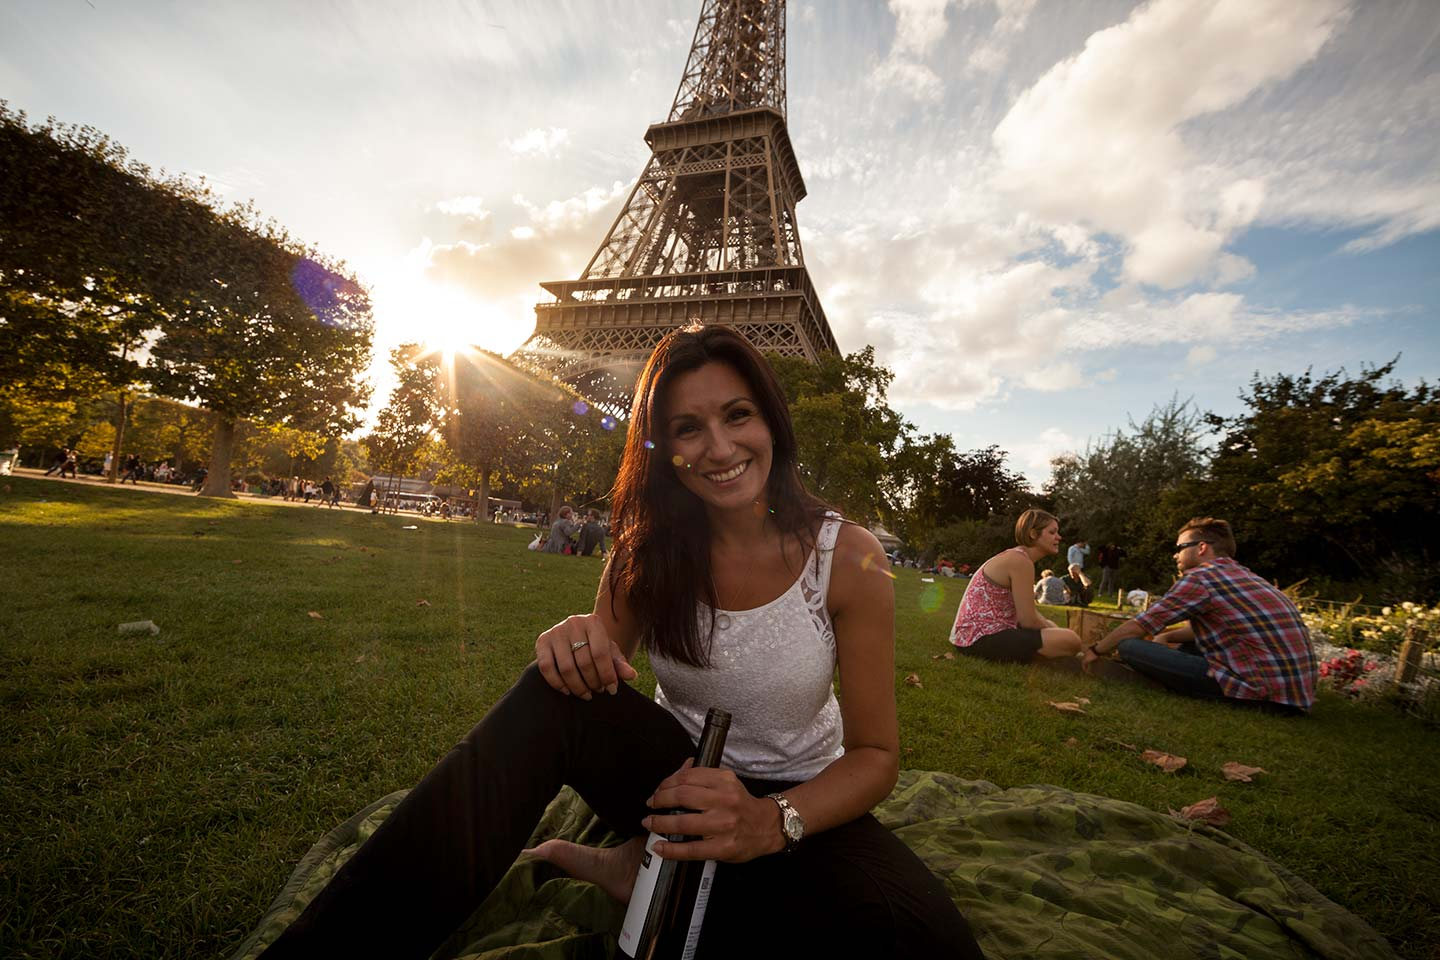 Paula At The Eiffel Tower